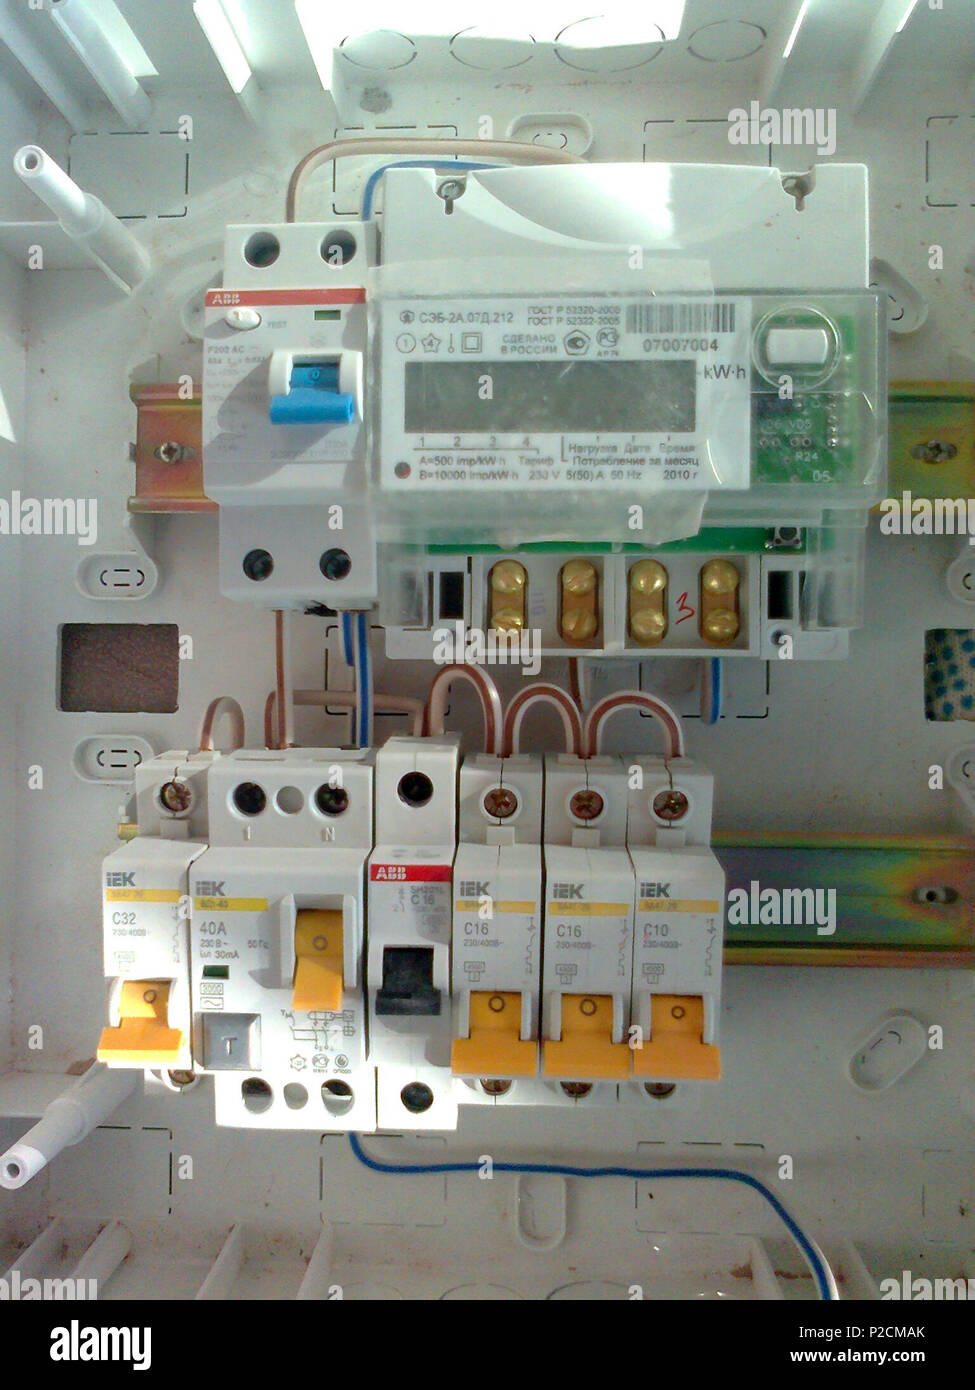 english: fuse box, this person asked consultation from me, cause he had  problems with assembling due to lack of knowledges. but this way, if you  have no enough knowledges to do  alamy